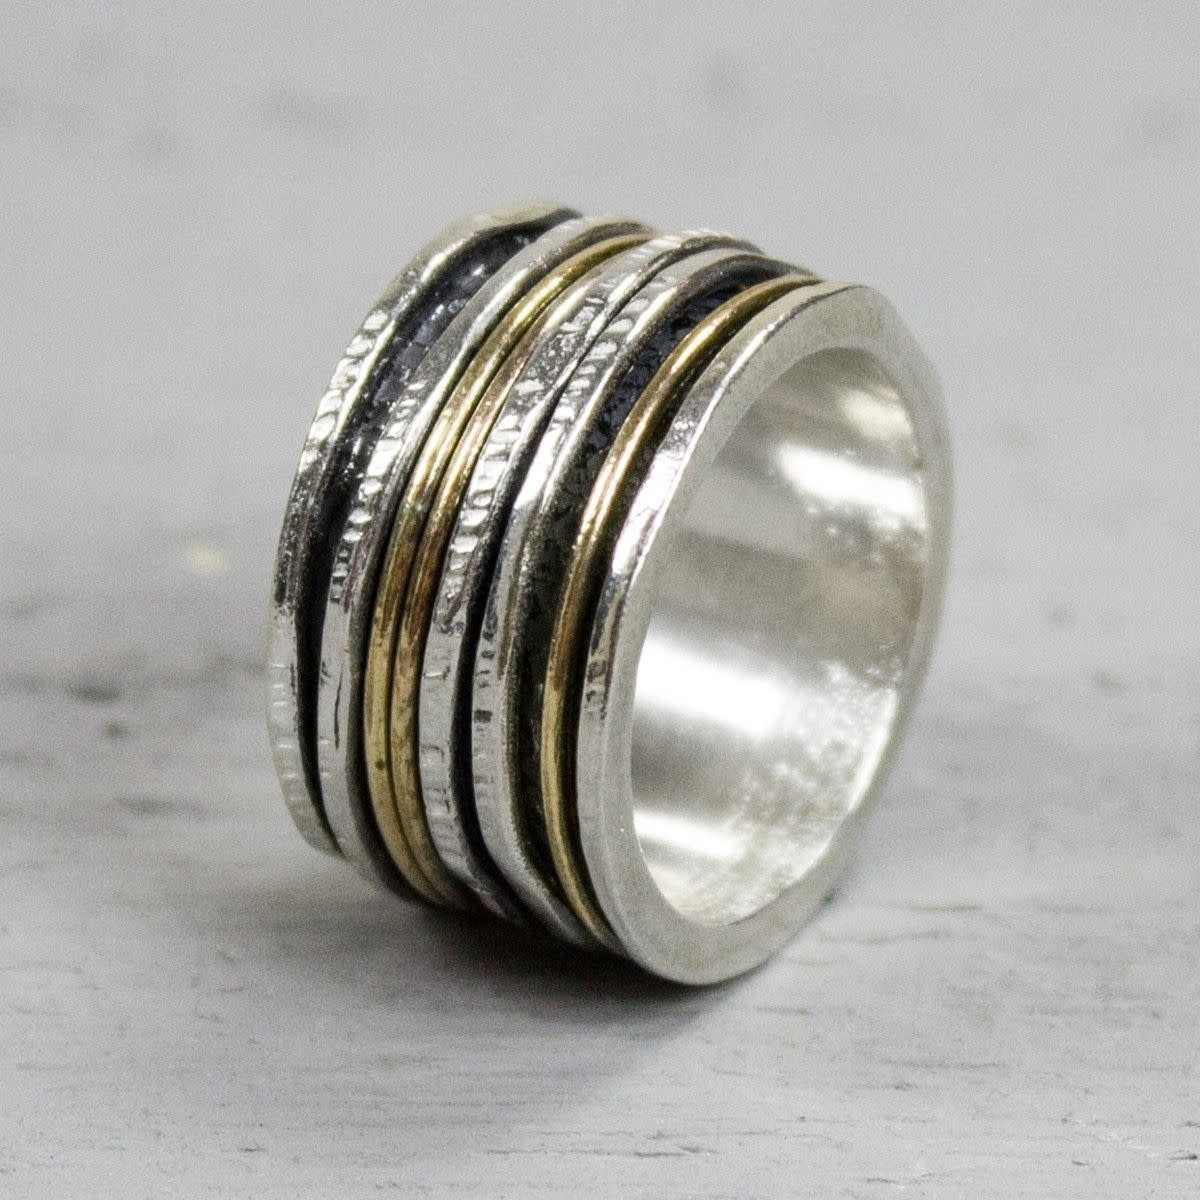 Ring Silver + Gold Filled 19436-7